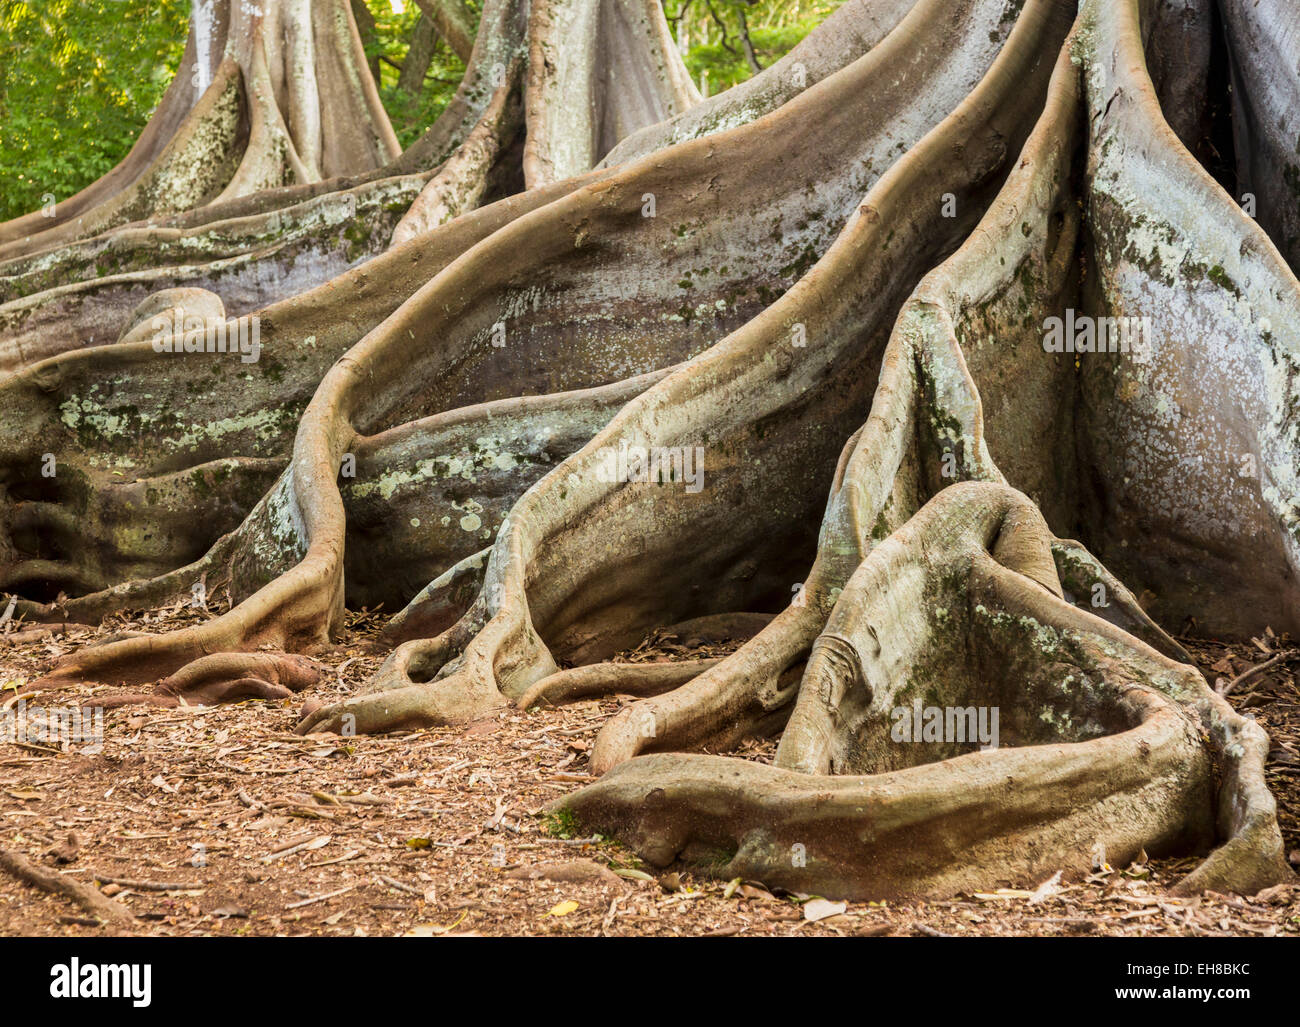 Roots of the Moreton Bay Fig Tree growing in Hawaii - Stock Image